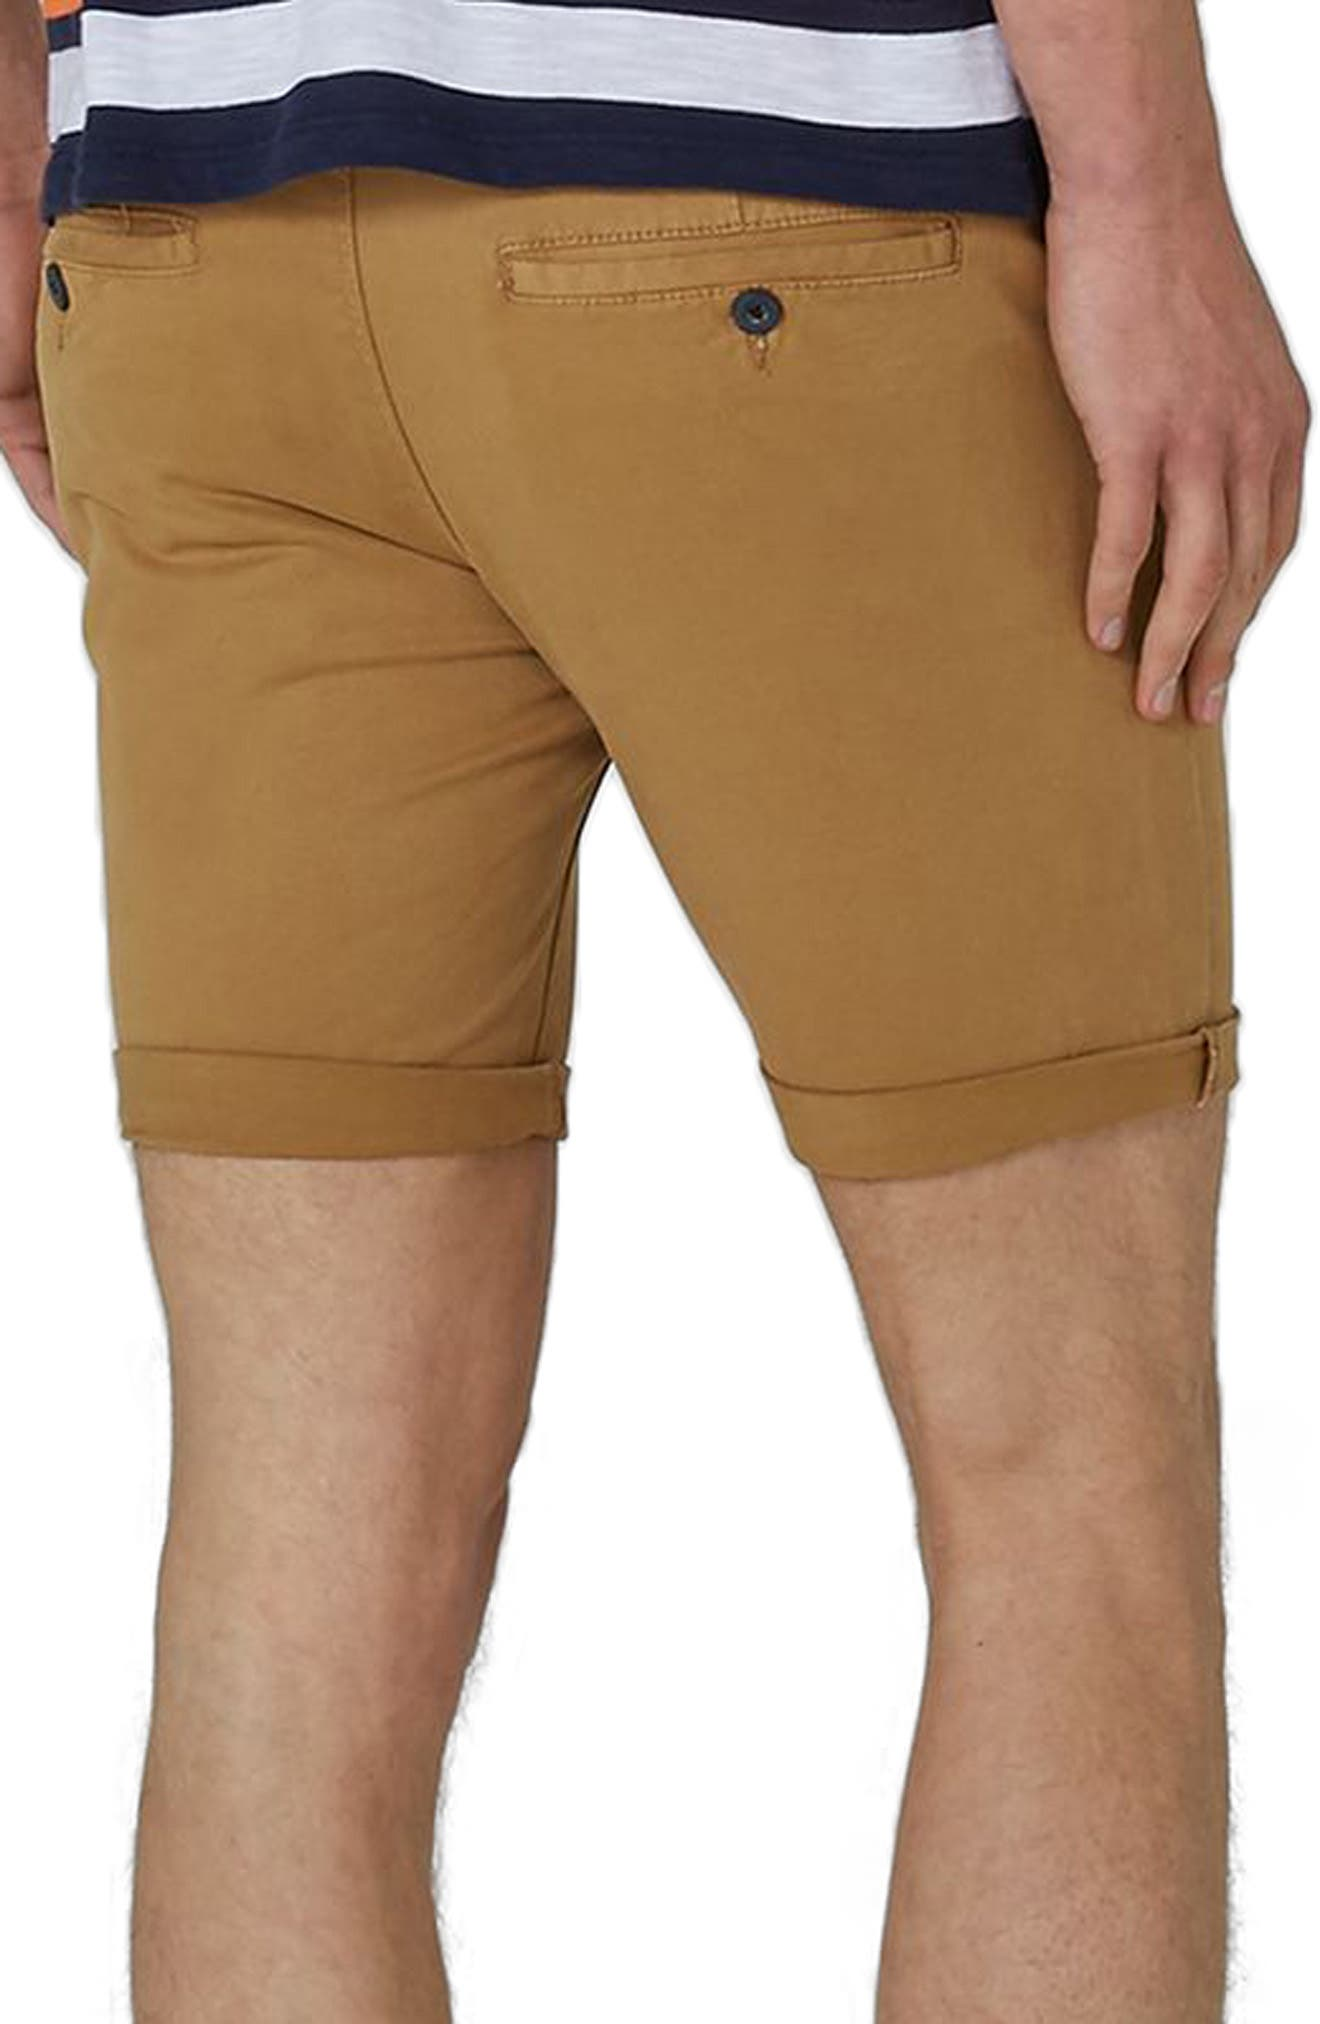 Stretch Skinny Chino Shorts,                             Alternate thumbnail 4, color,